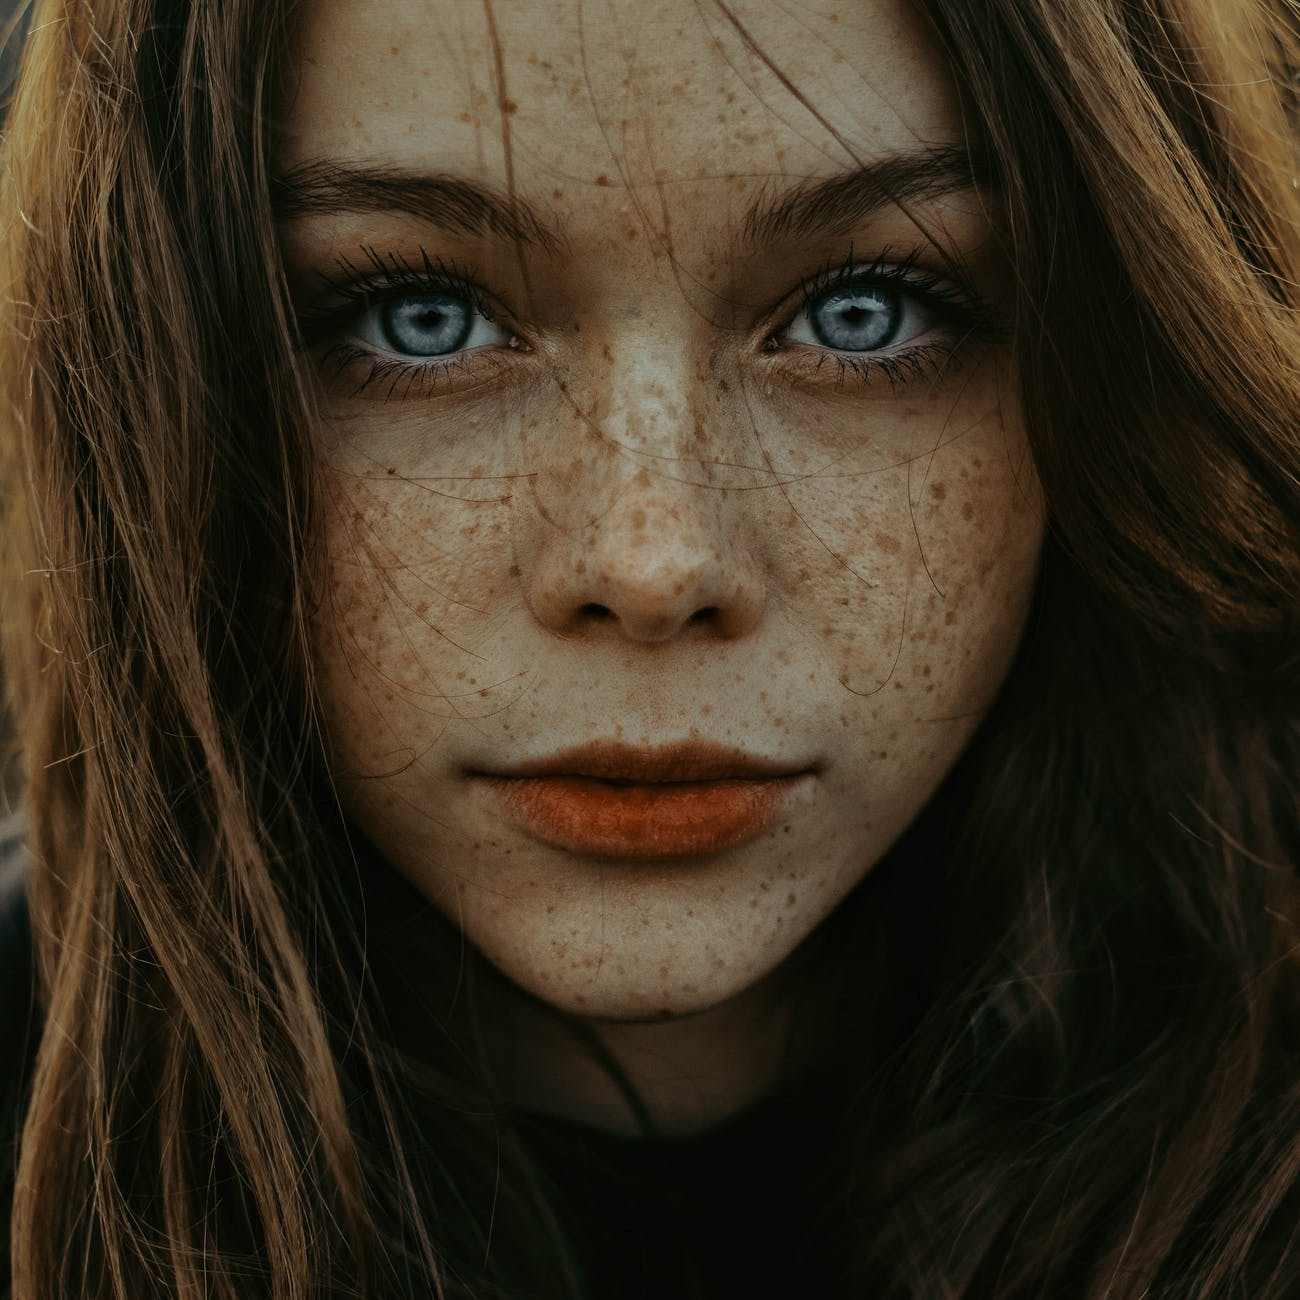 unemotional woman with freckles and big blue eyes